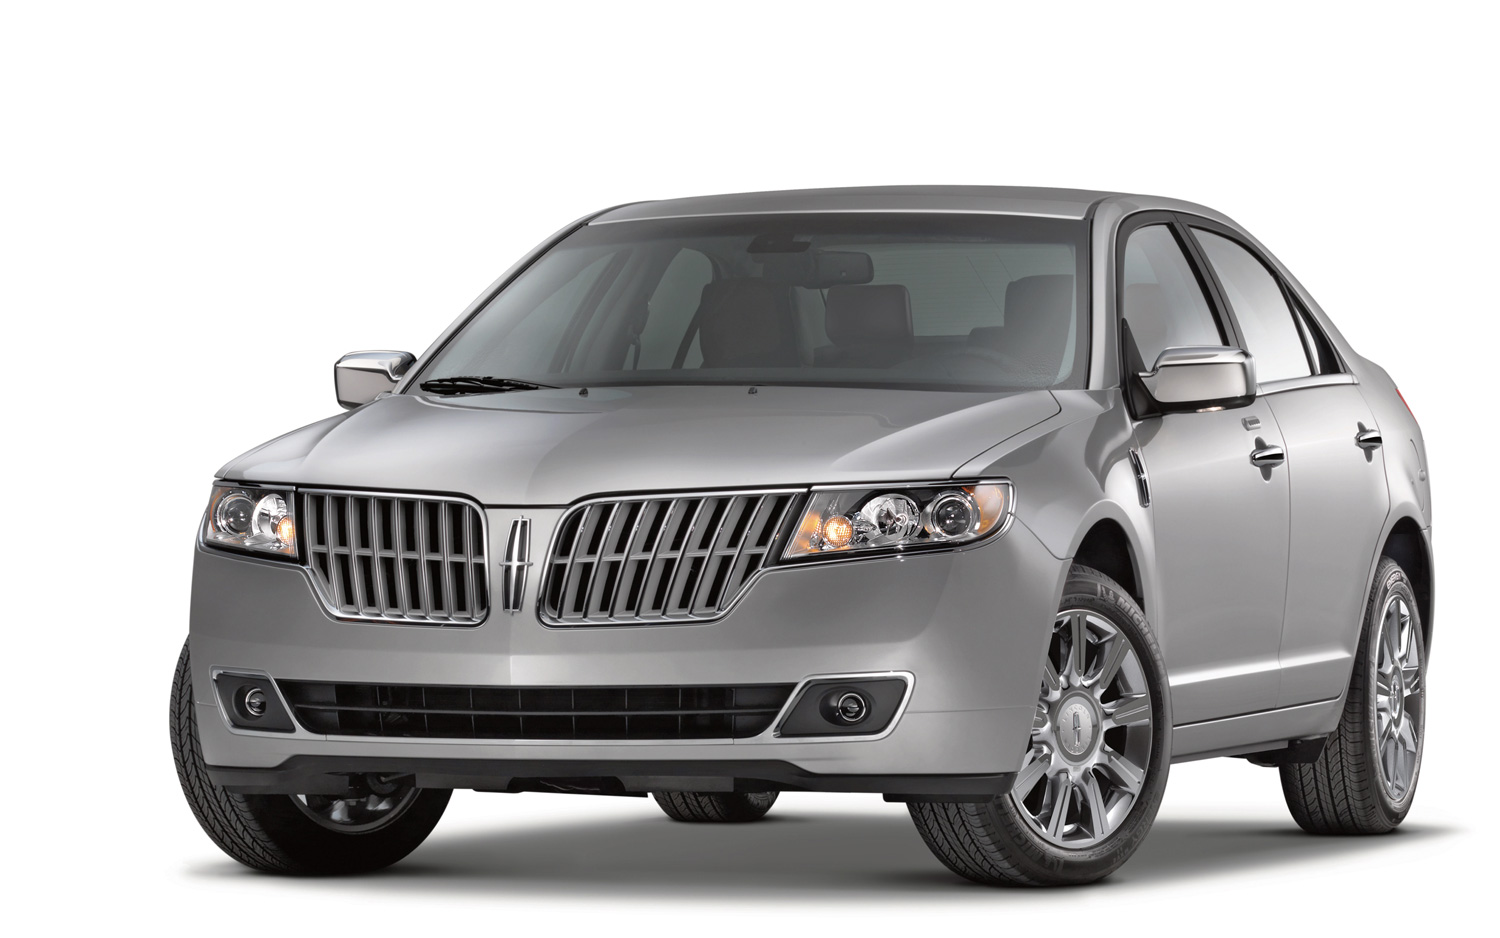 2012 Lincoln Mkz #13